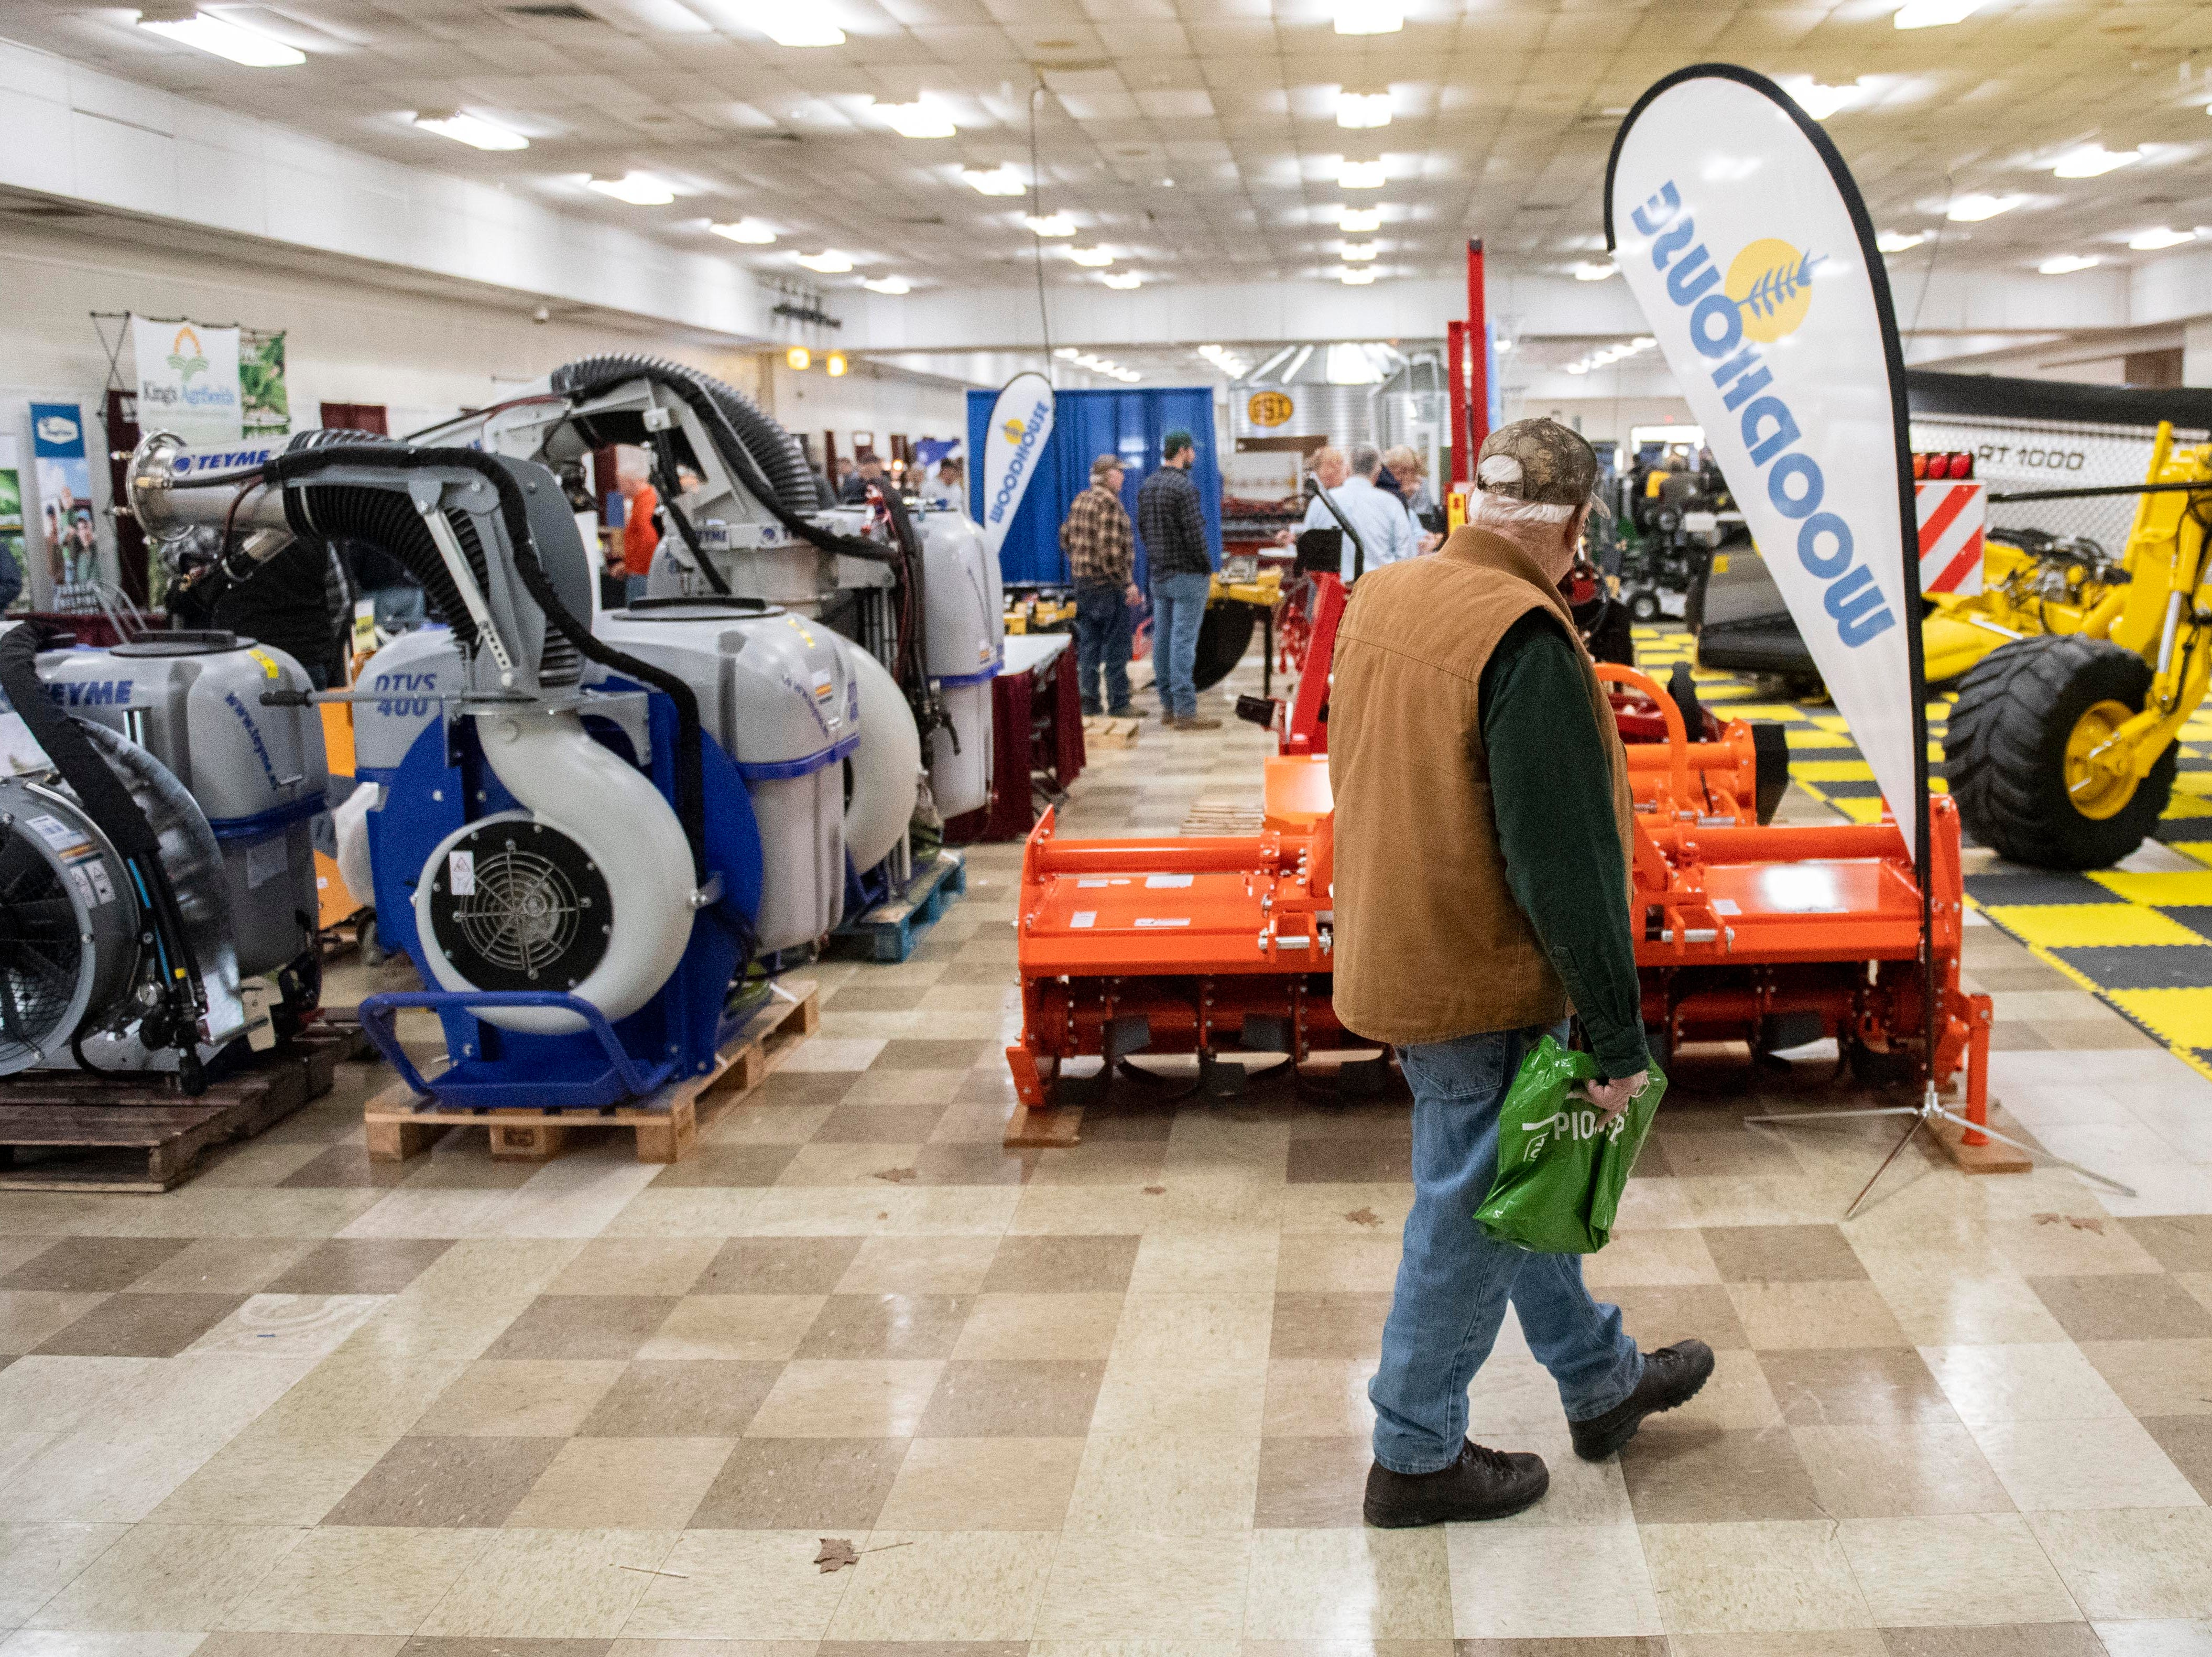 The Keystone Farm Show, at the York Expo Center, has hundreds of farming equipment in 10 different buildings, along with lining the outside, Tuesday, Jan. 8, 2019. The Keystone Farm Show has nearly 420 vendors and is expected to bring up to 15,000 people to the York Expo Center. The show runs through Thursday, Jan. 10.